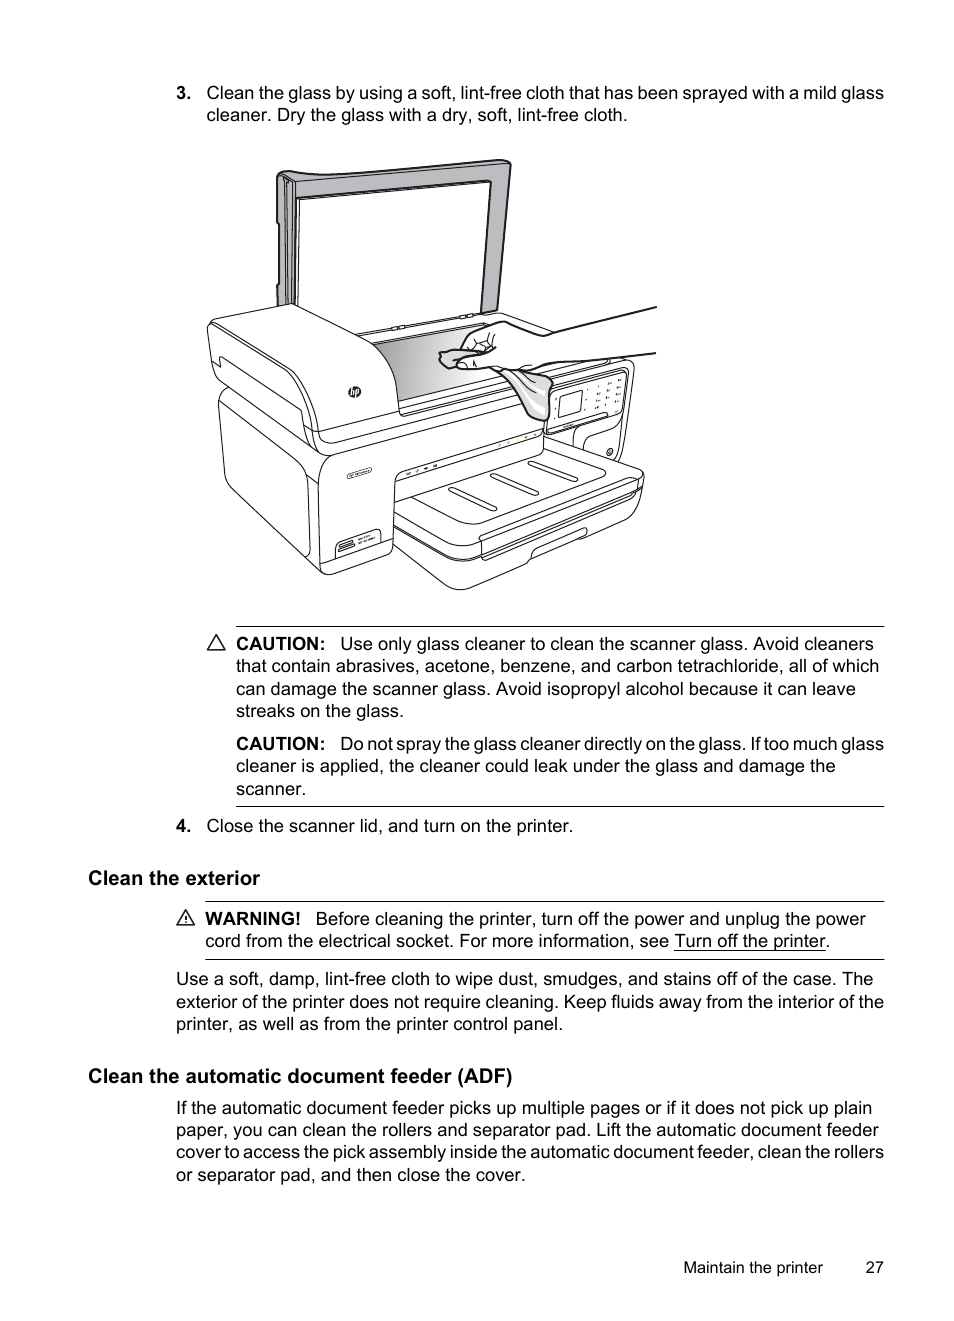 Clean the exterior, Clean the automatic document feeder (adf